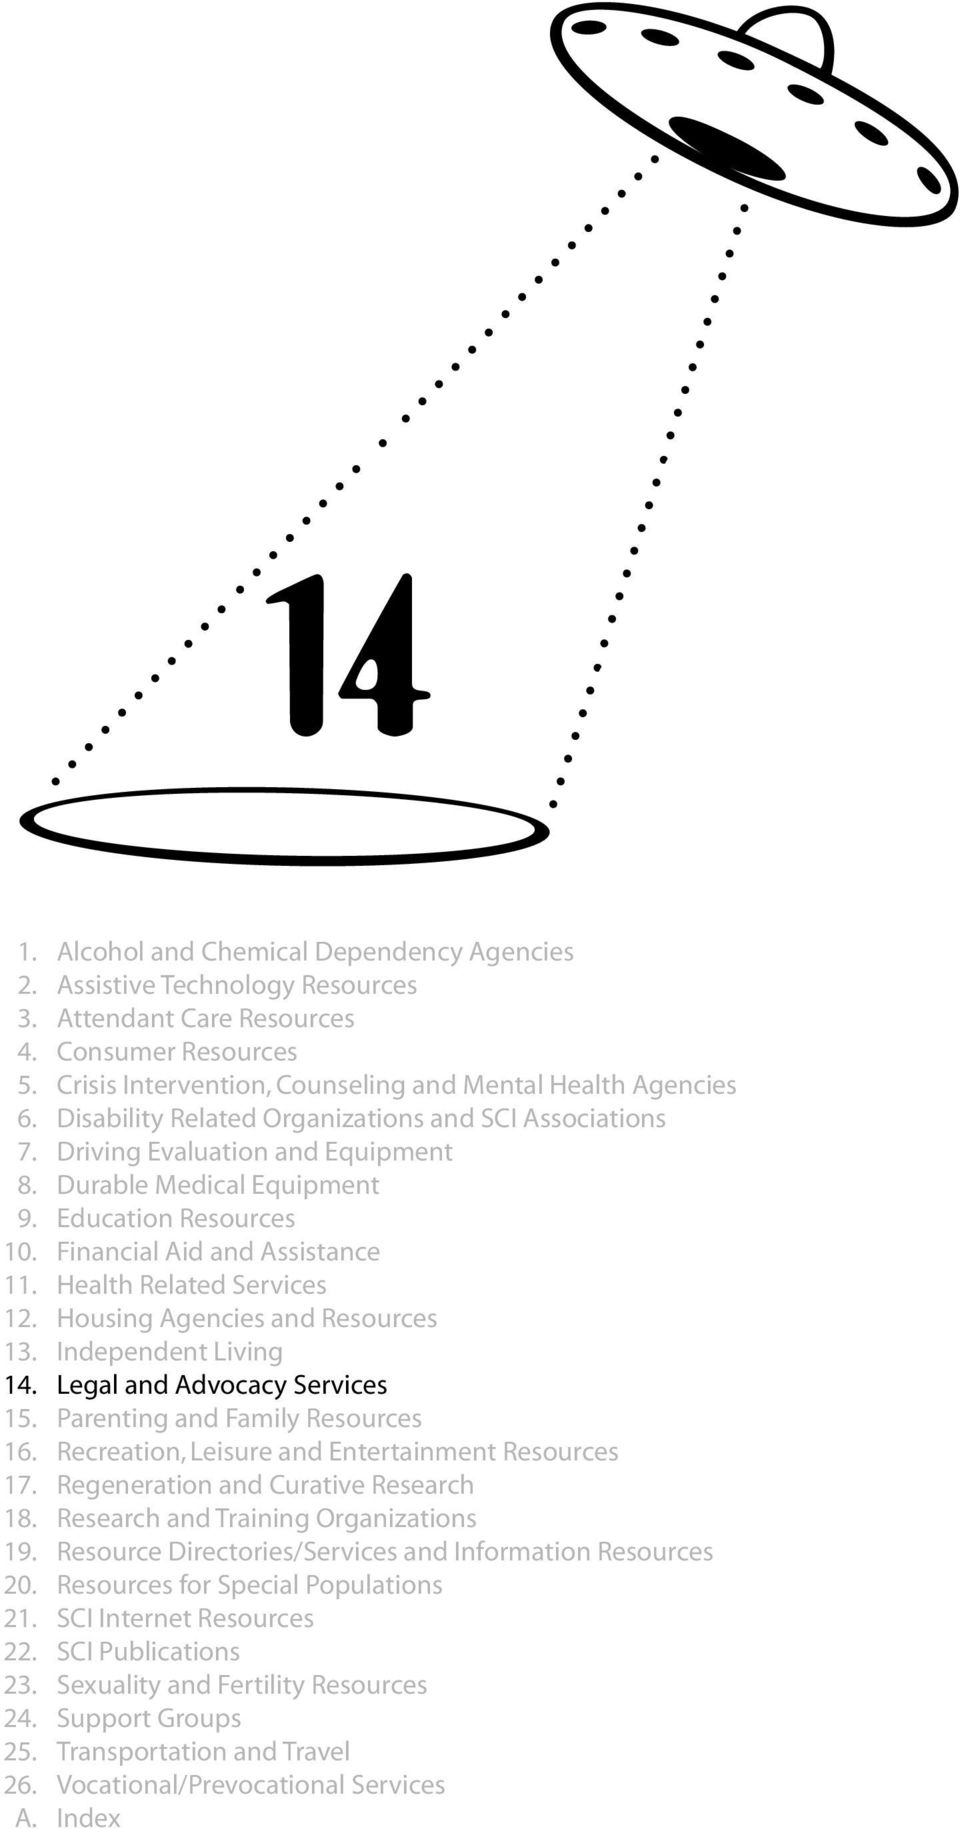 Health Related Services 12. Housing Agencies and Resources 13. Independent Living 14. Legal and Advocacy Services 15. Parenting and Family Resources 16.